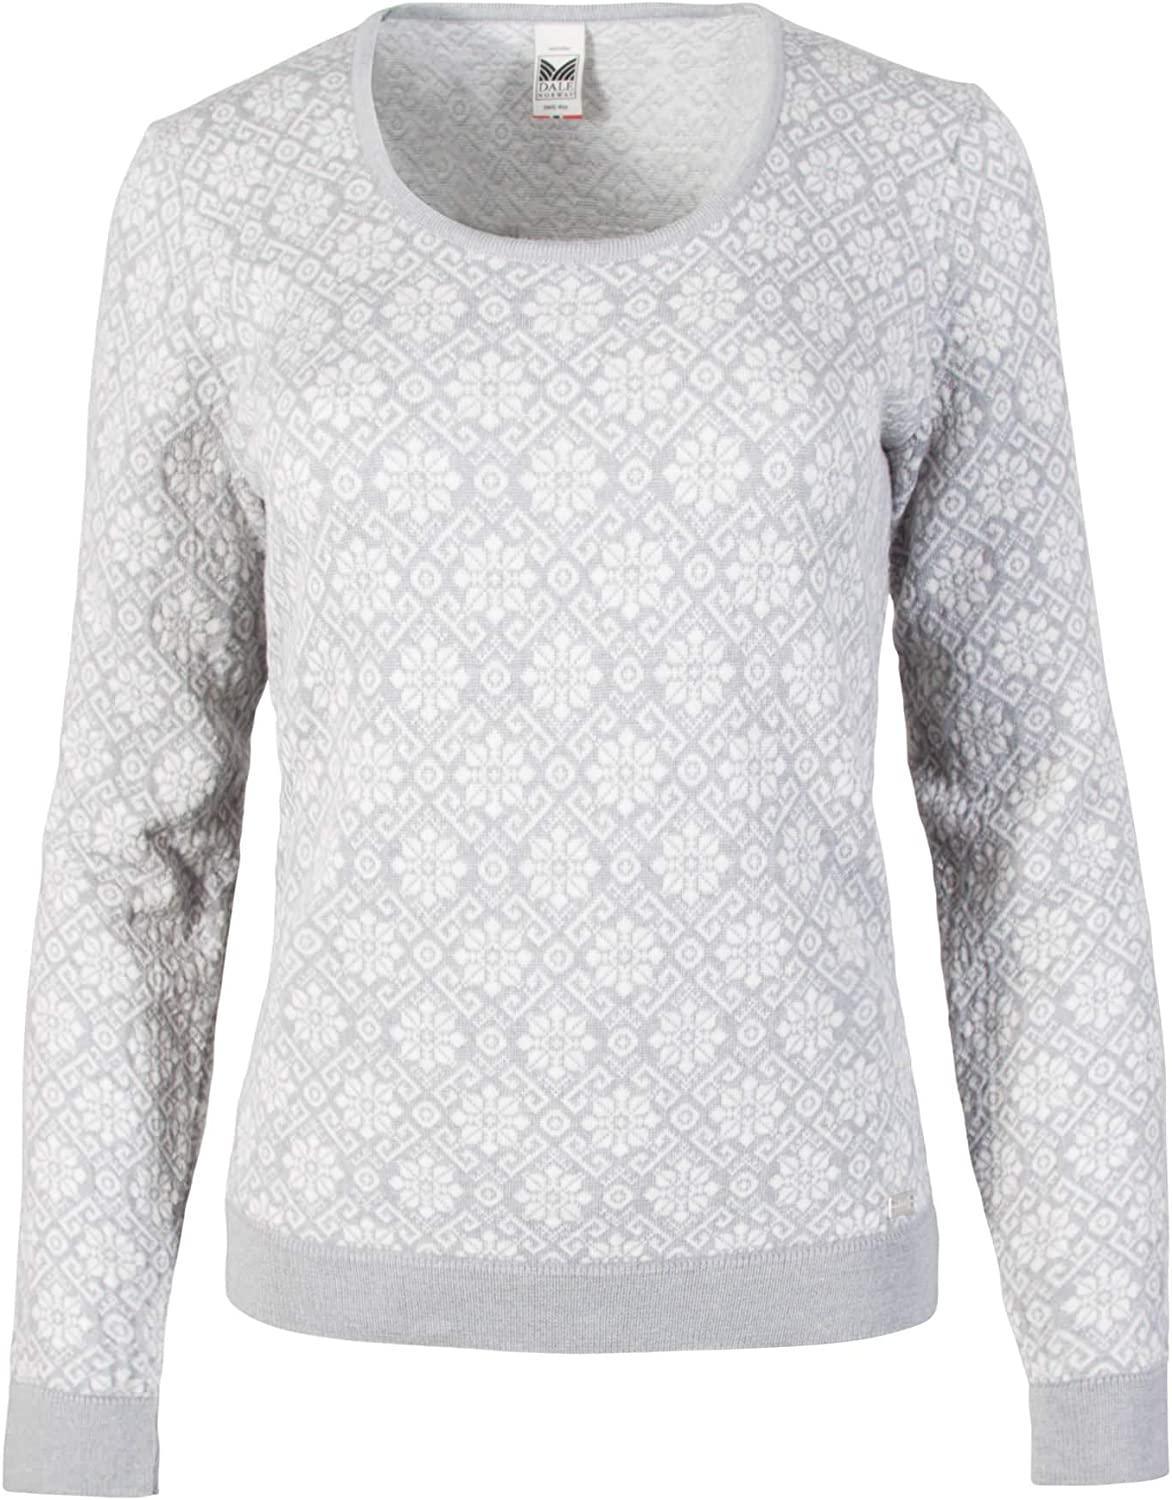 Dale of Norway Sweater Sonja Femenina